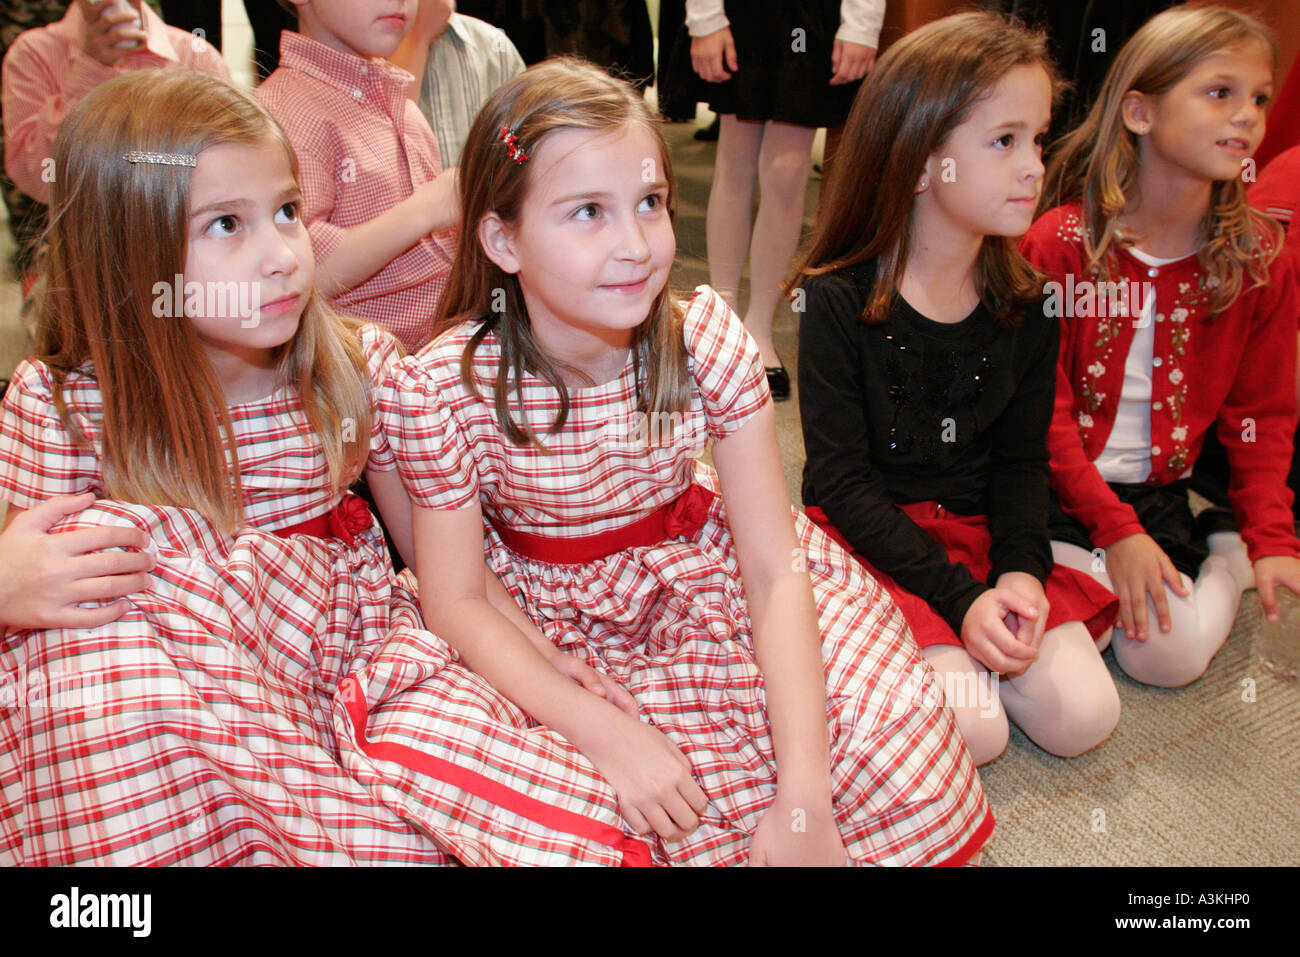 Watch Office Christmas Party.Miami Florida Office Christmas Party Children Girls Watch